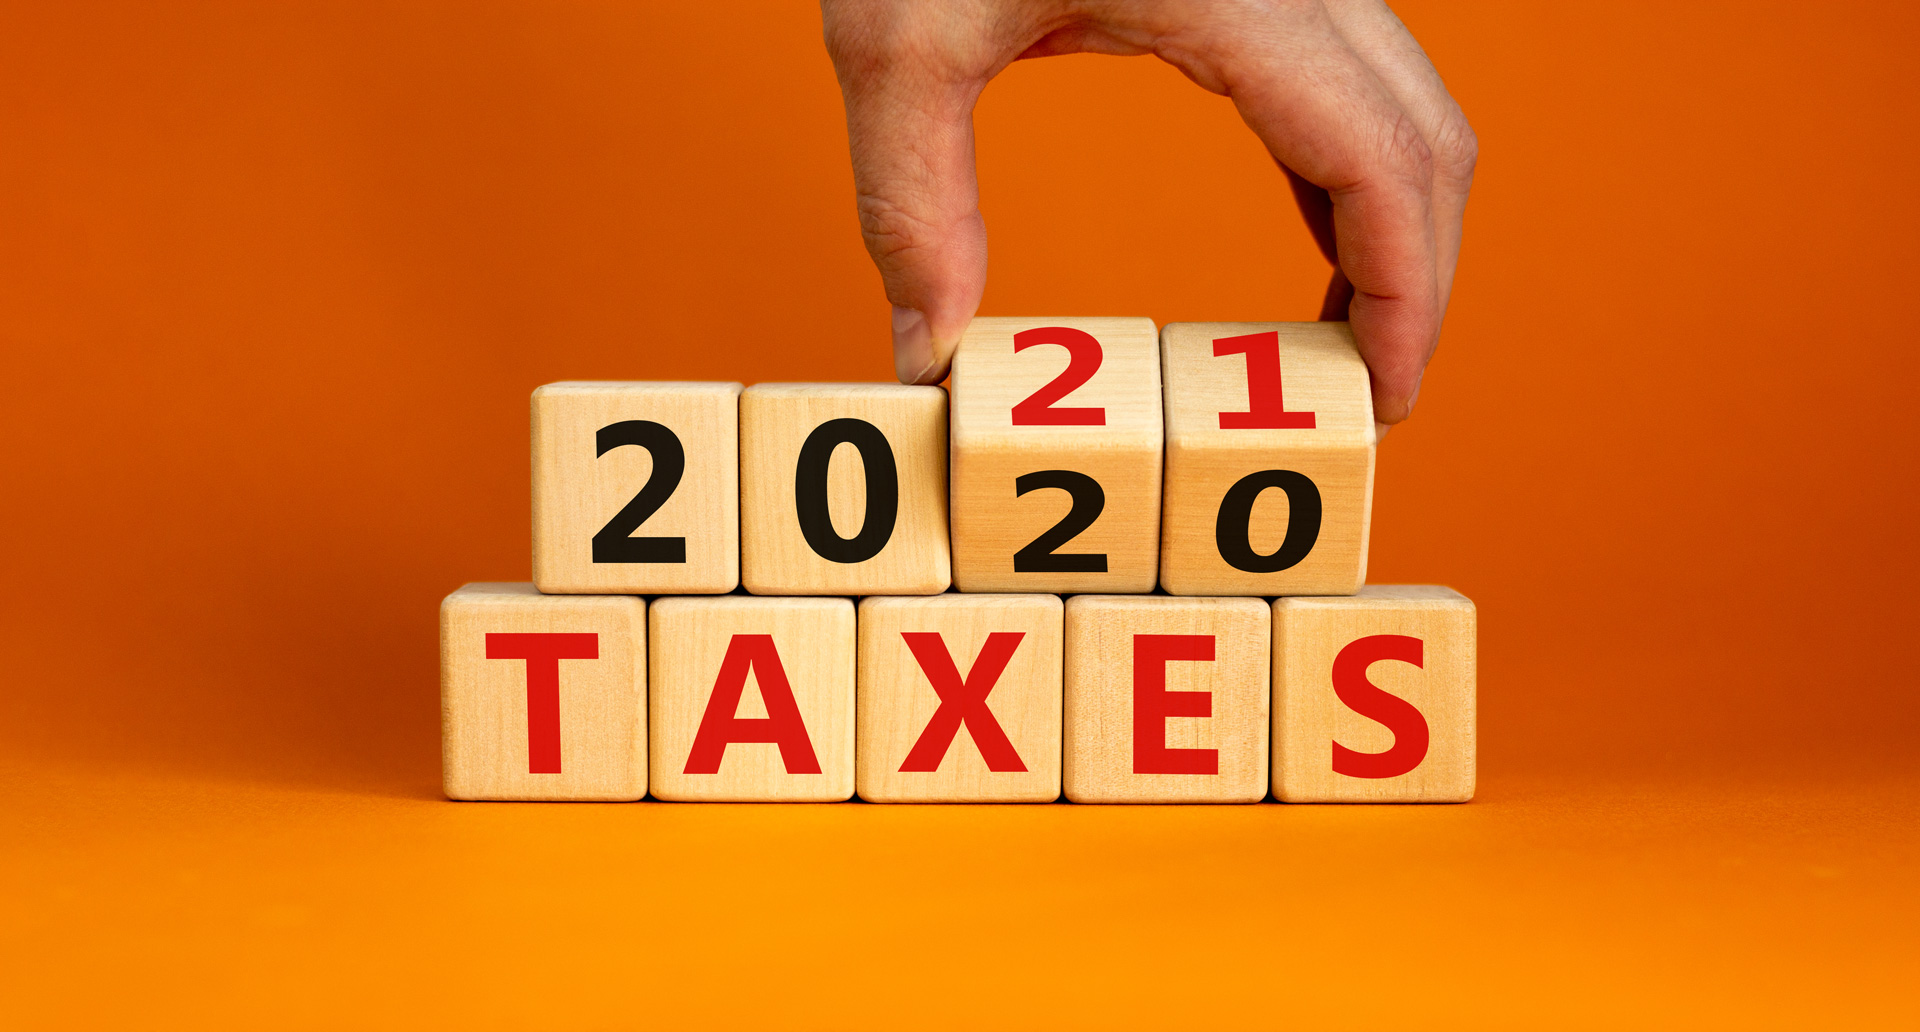 Why You Shouldn't Time Tax Hikes With Munis